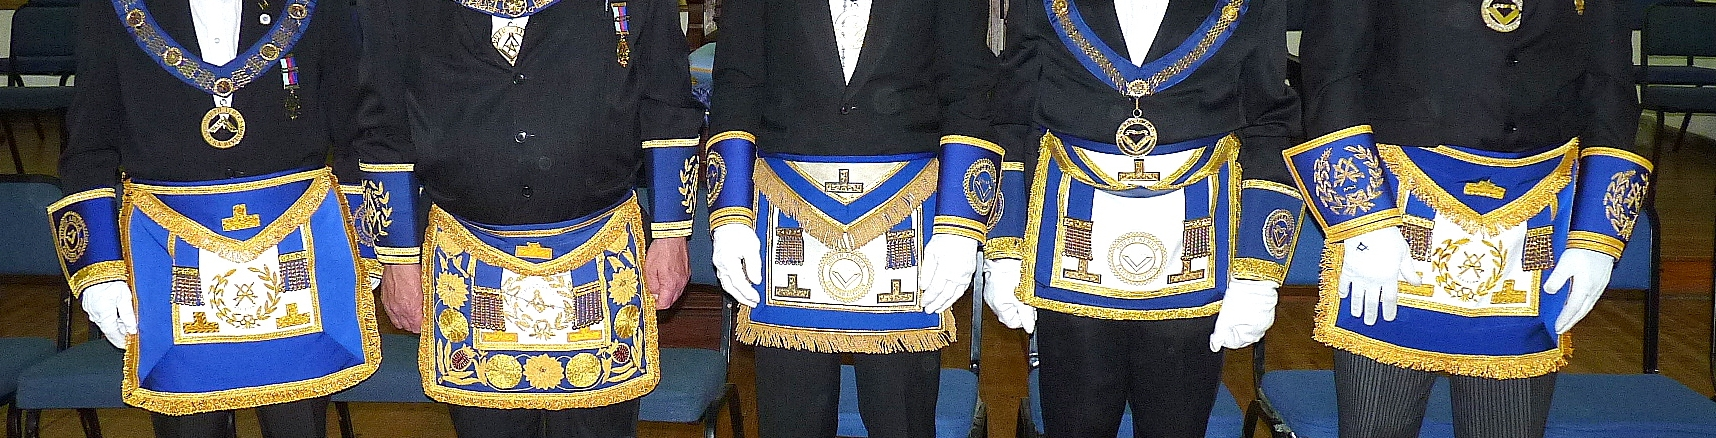 Grand Lodge of South Africa | Eastern Division